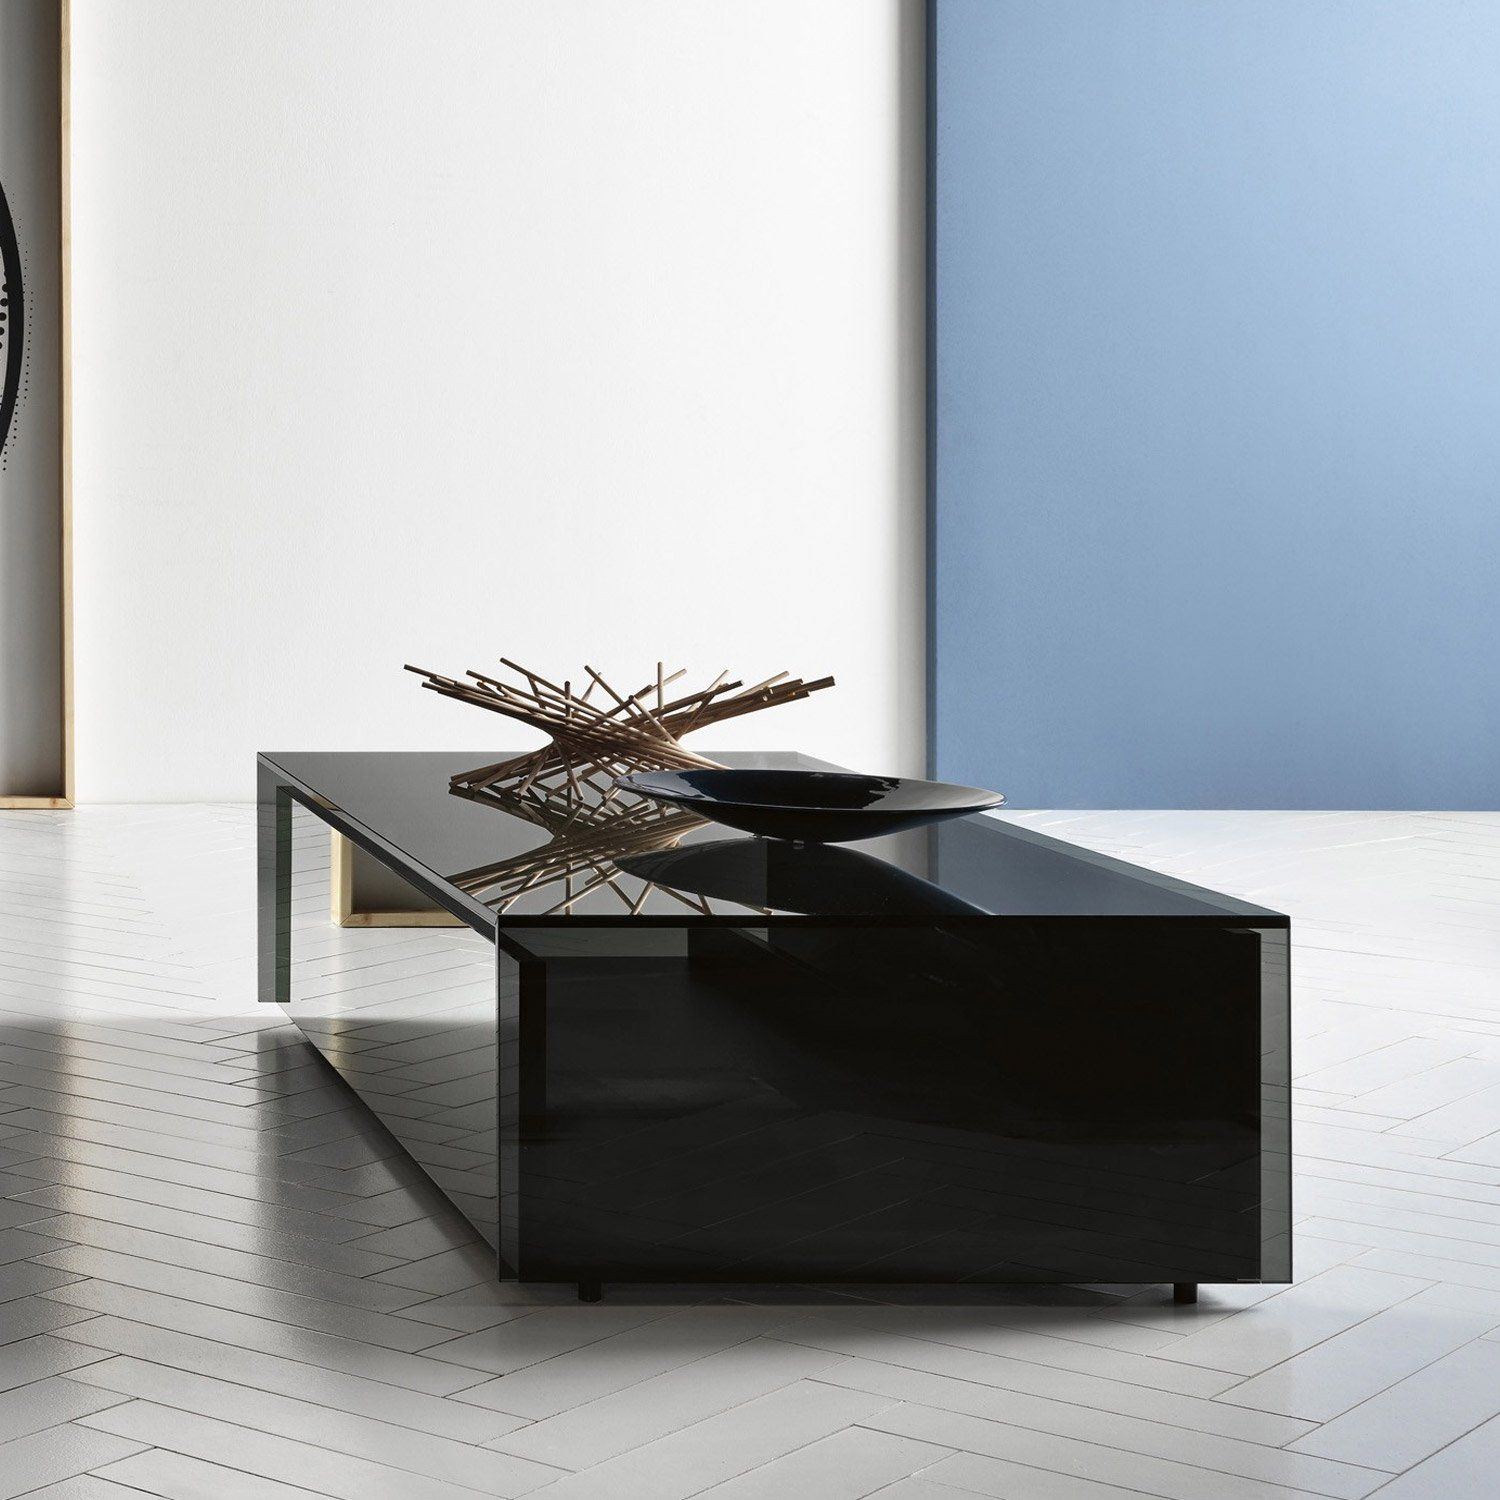 Modern Glass Coffee Table Contemporary Glass Coffee Table Klarity Modern Glass Coffee Table Mirrored Coffee Tables Glass Coffee Table [ 1500 x 1500 Pixel ]